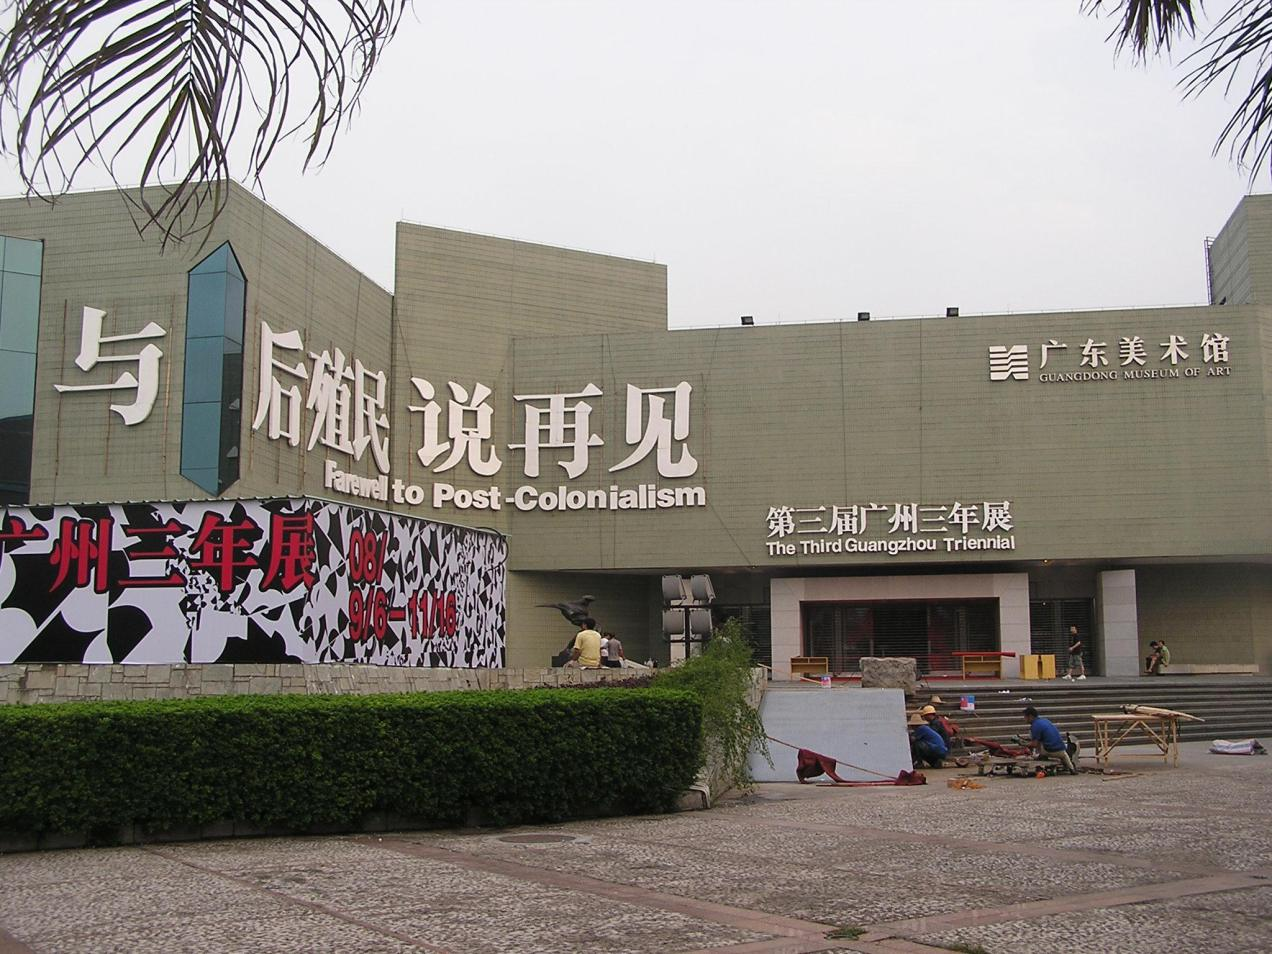 2008: Guangdong Museum Of Art, at the Guangzhou Triennale was shown. The theme of the Triennale is Farewell To Post-Colonialism.